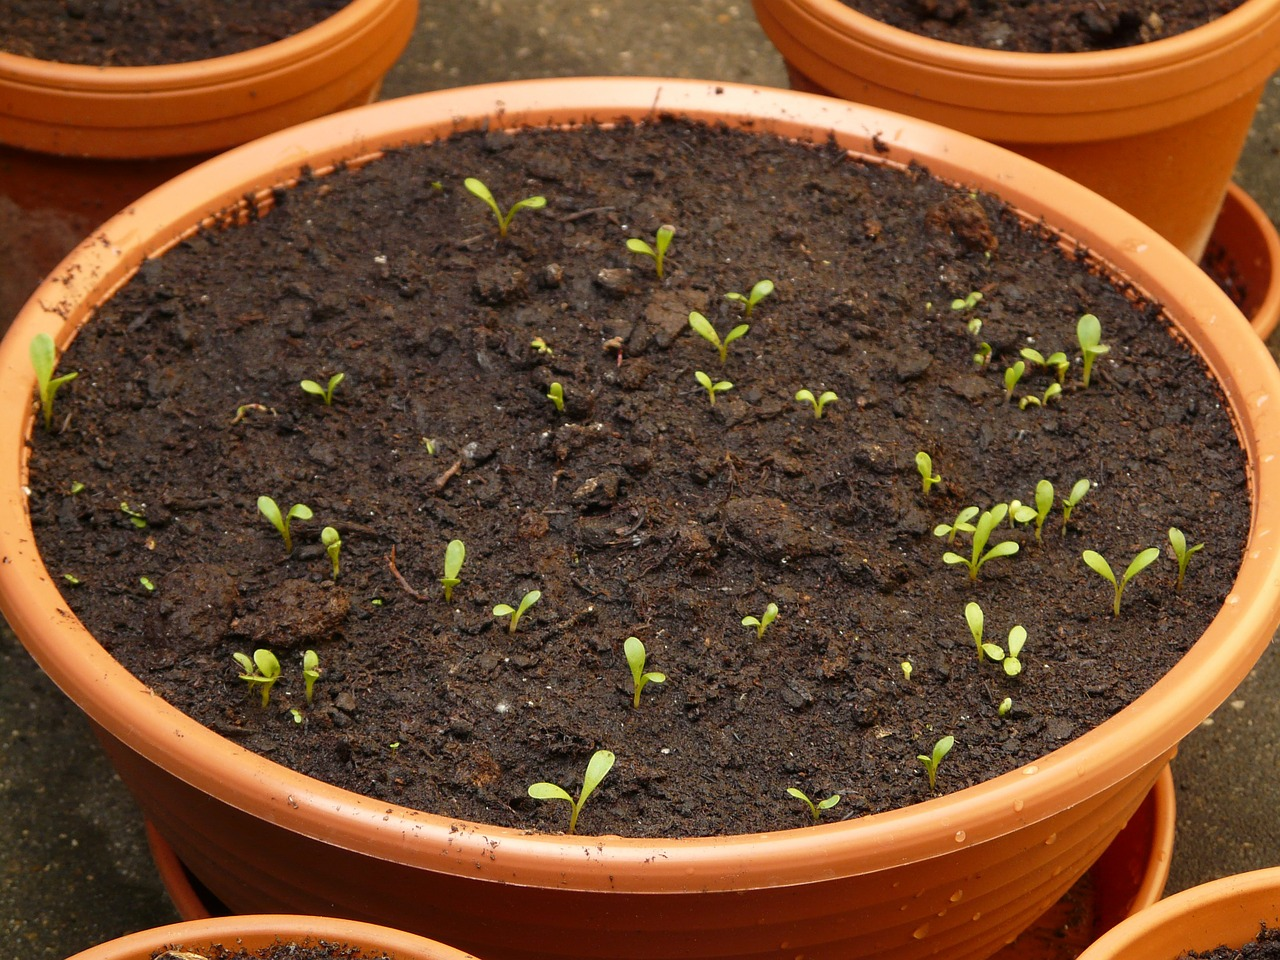 You don't have to have a fancy set-up. Seedlings can be started in any containers with a good potting mix and the right amount of light.